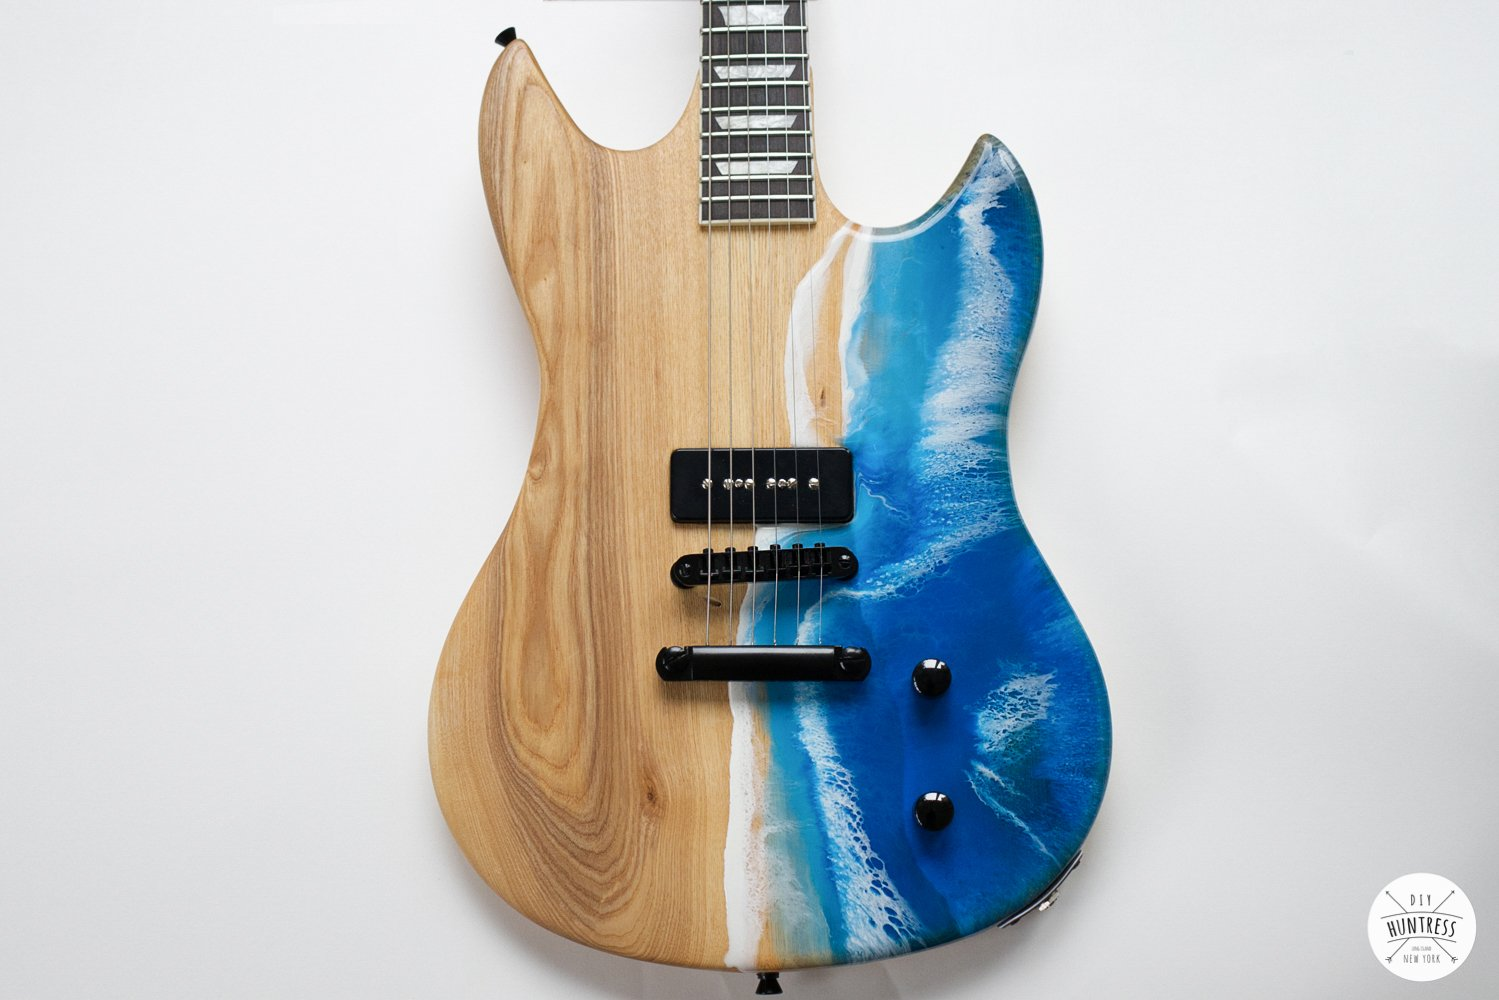 DIY Resin Ocean Pour On A Guitar